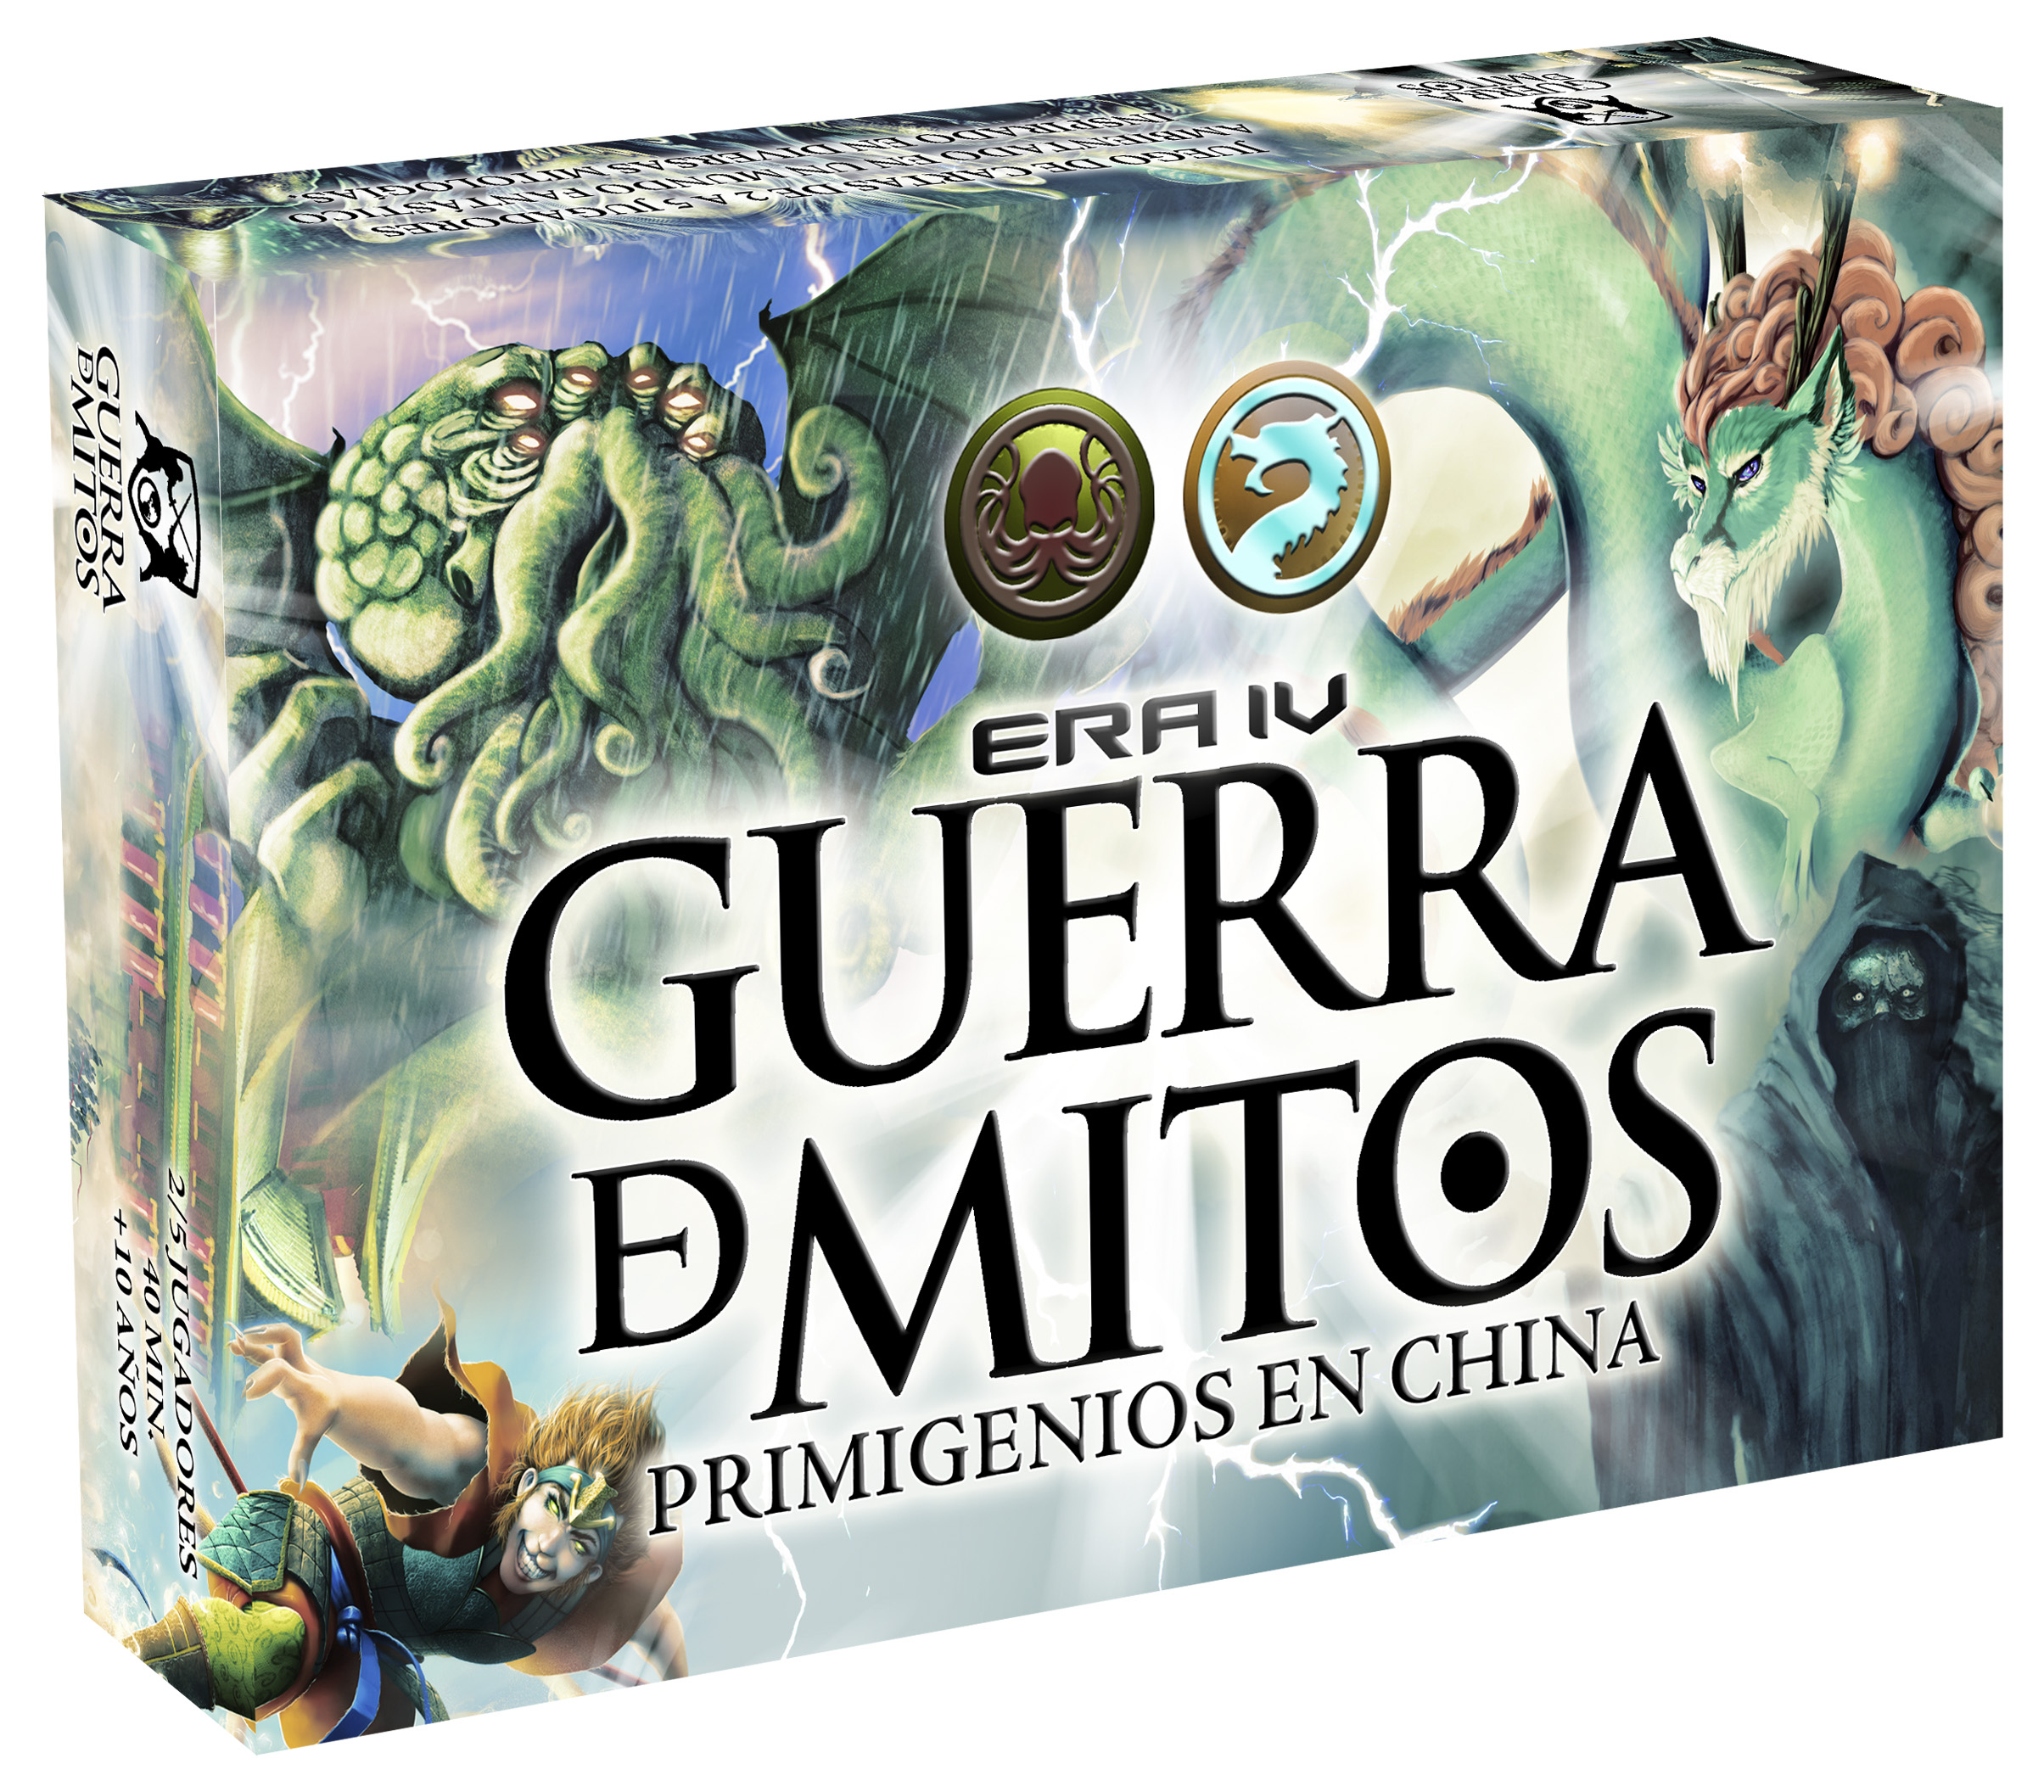 GDM12: Primigenios en China